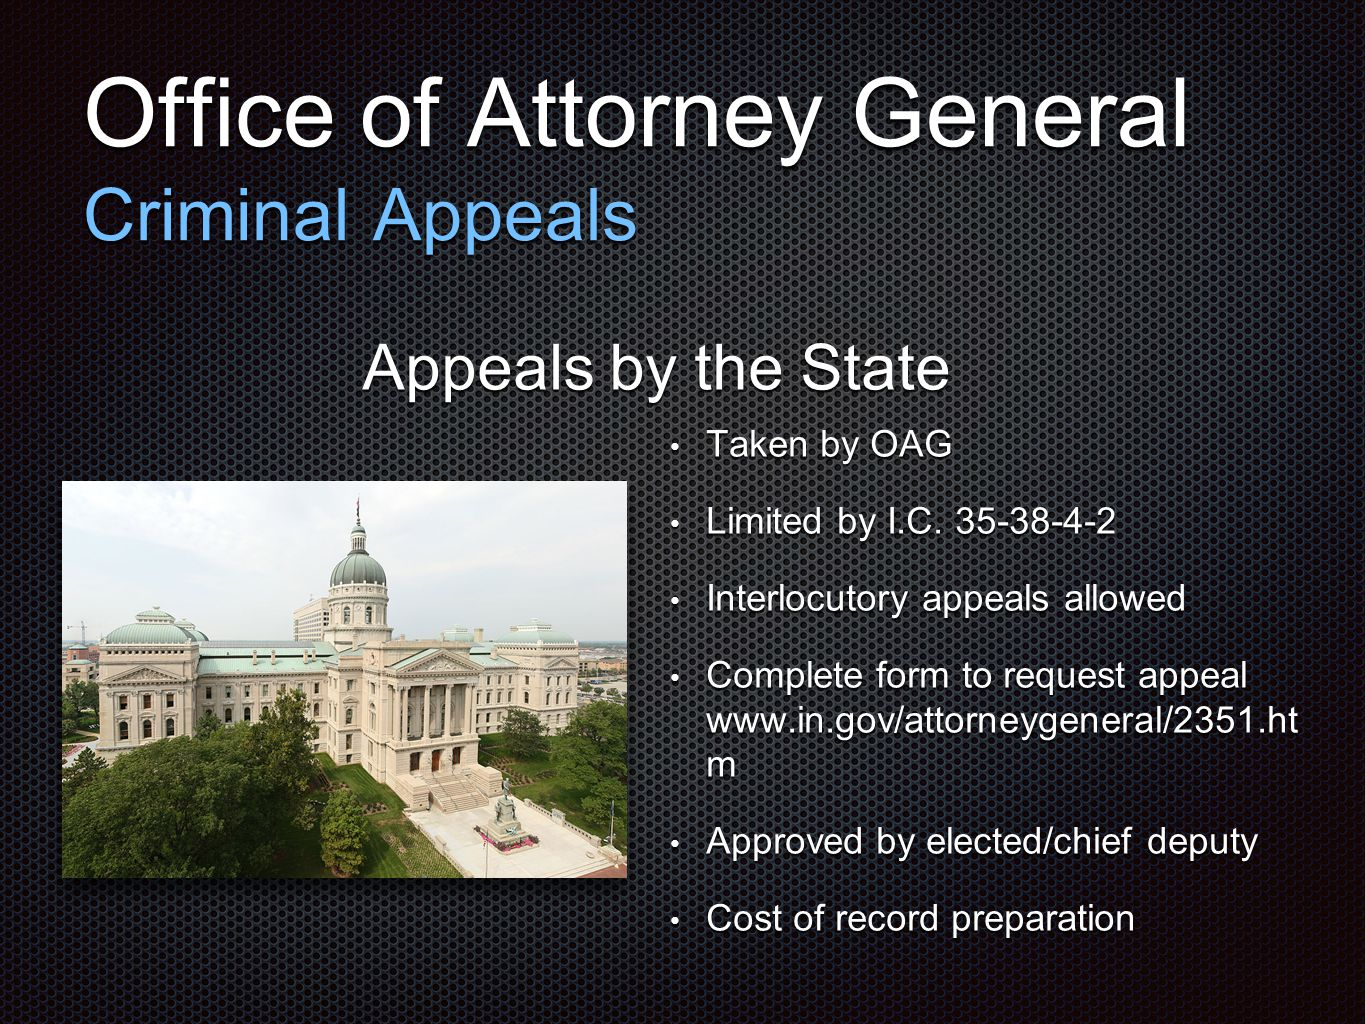 Office of Attorney General Criminal Appeals Appeals by the State Taken by OAG Taken by OAG Limited by I.C. 35-38-4-2 Limited by I.C. 35-38-4-2 Interlo